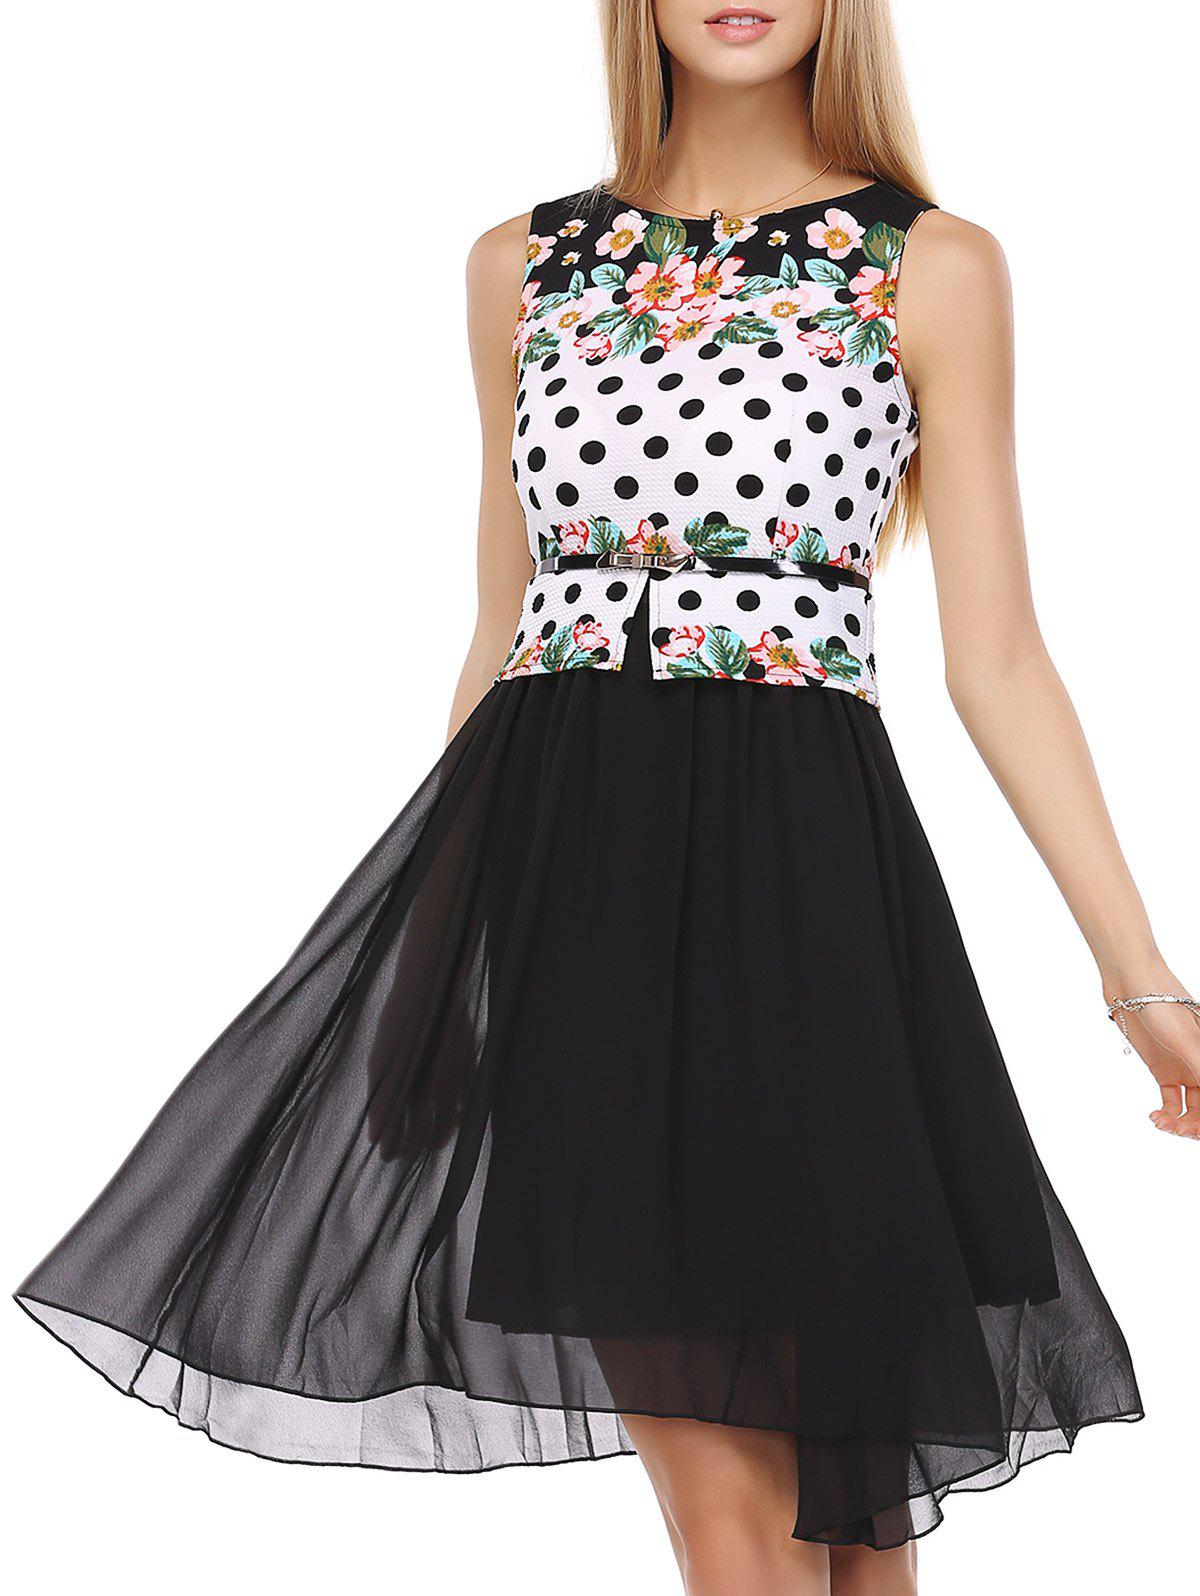 False Two Pieces Polka Dot Floral Pattern Tie Belt Dress - WHITE/BLACK 4XL